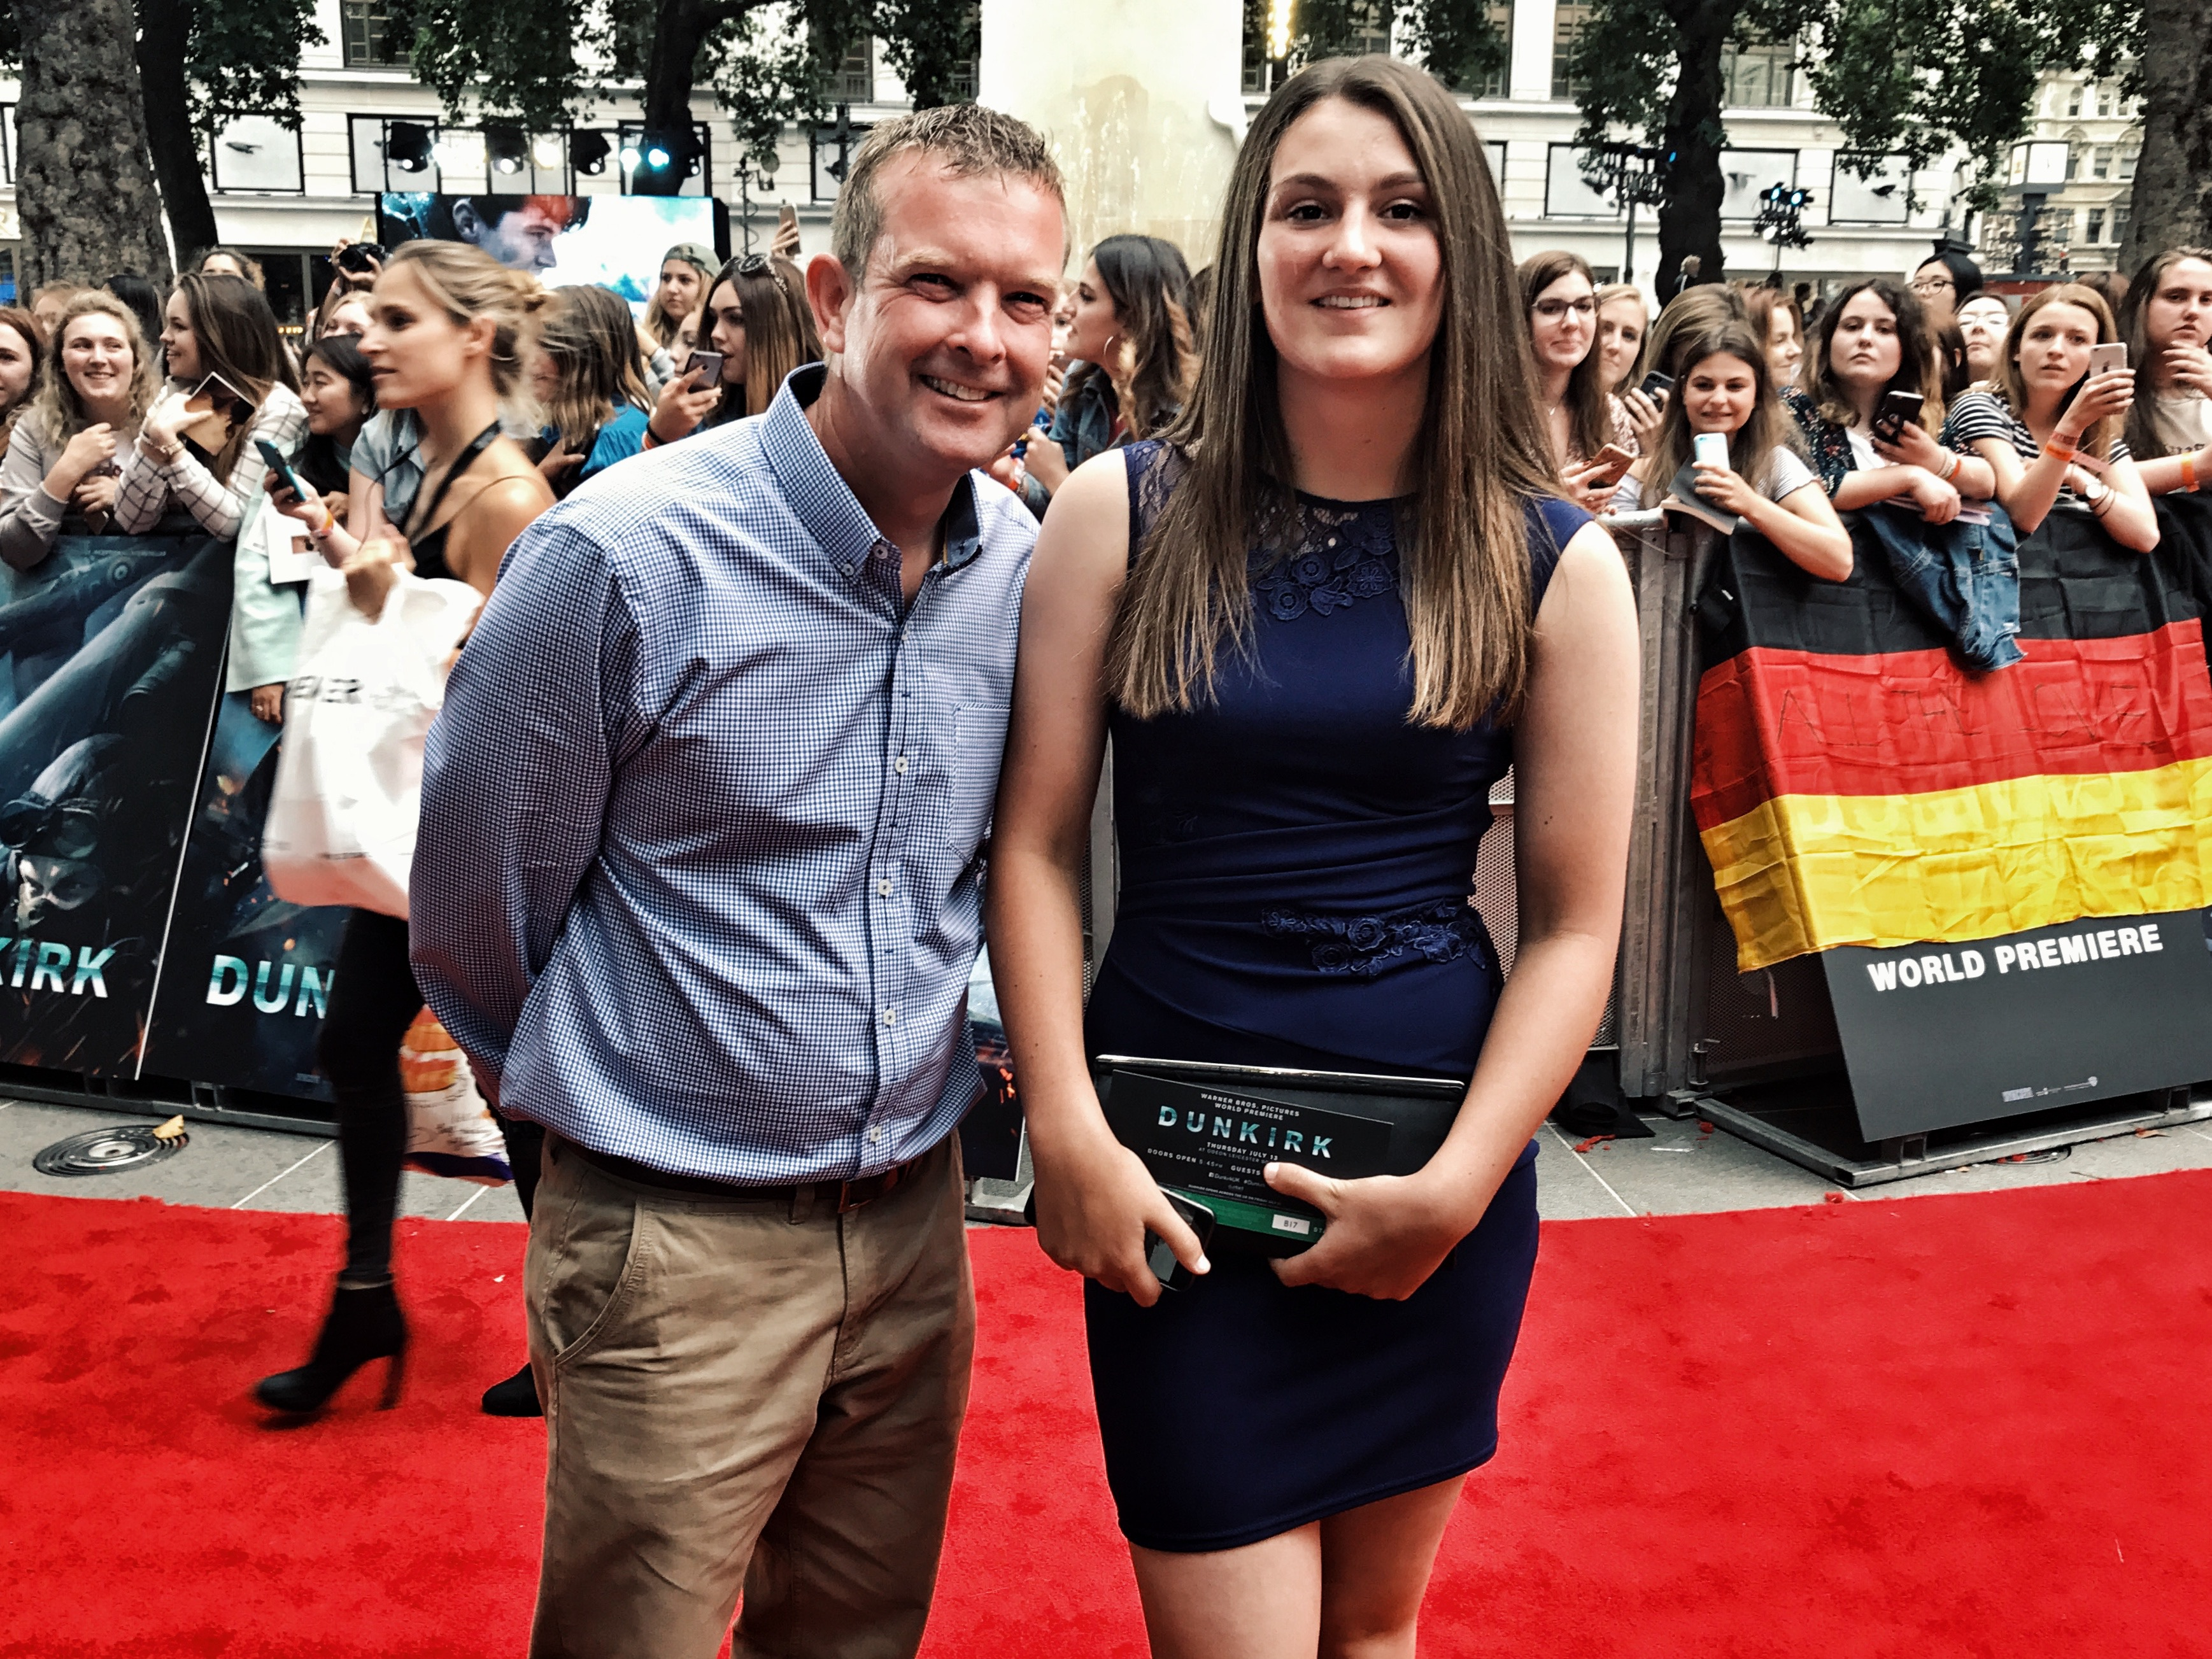 Ramsgate Coxswain Ian Cannon and daughter Becky at Dunkirk premiere